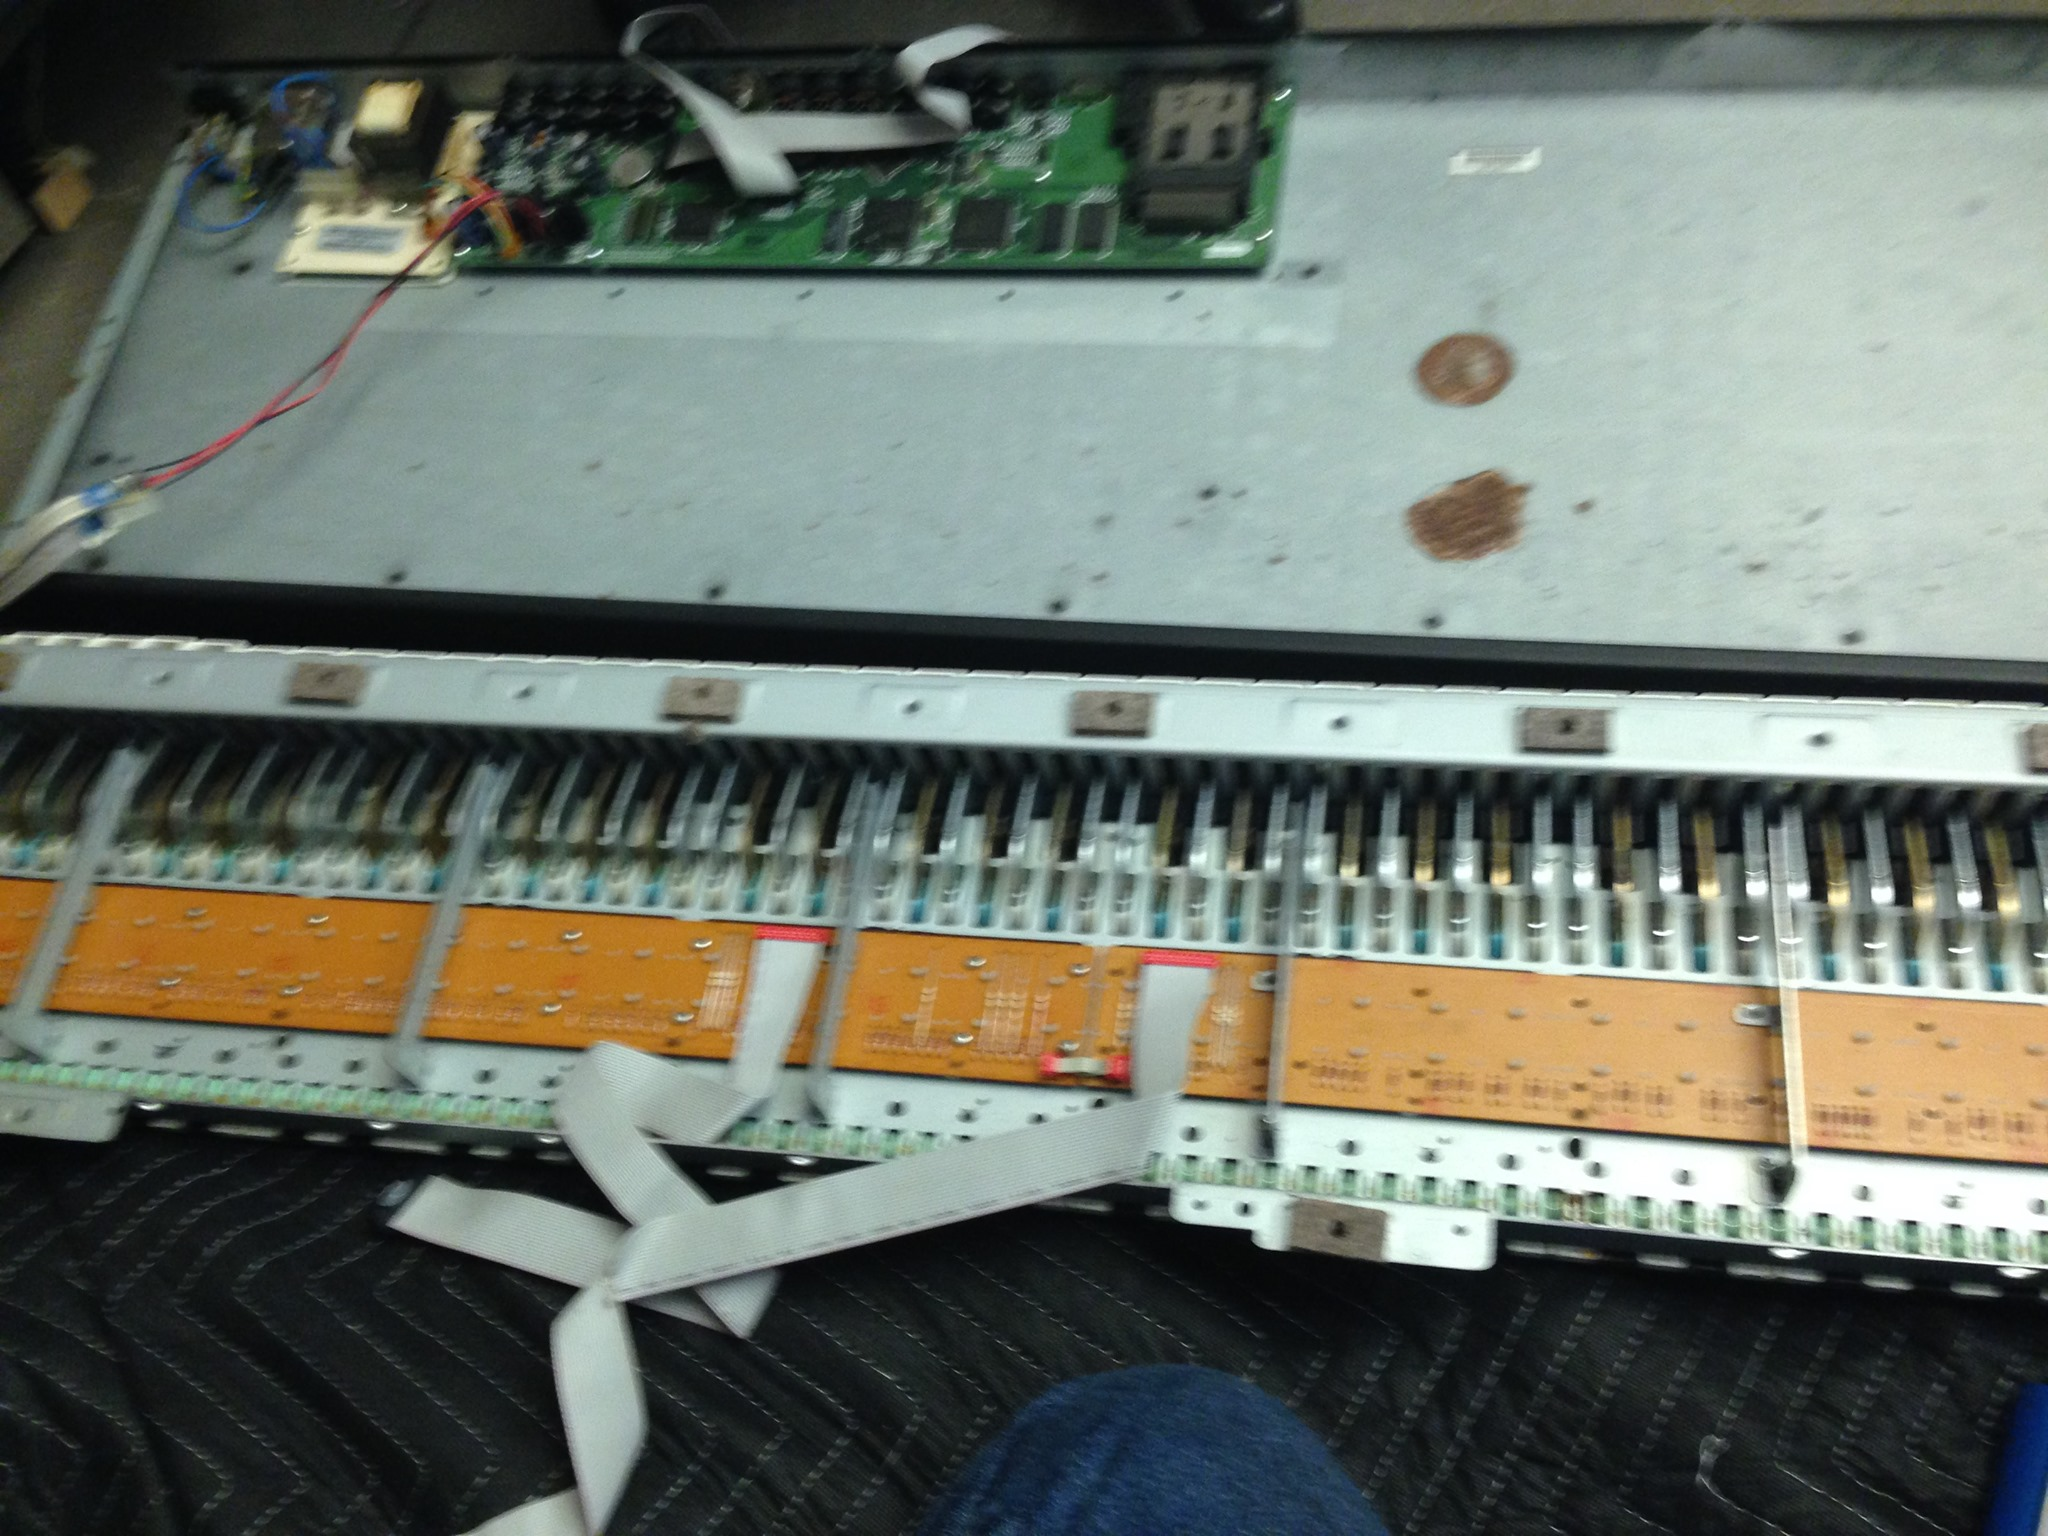 keyboard opened up